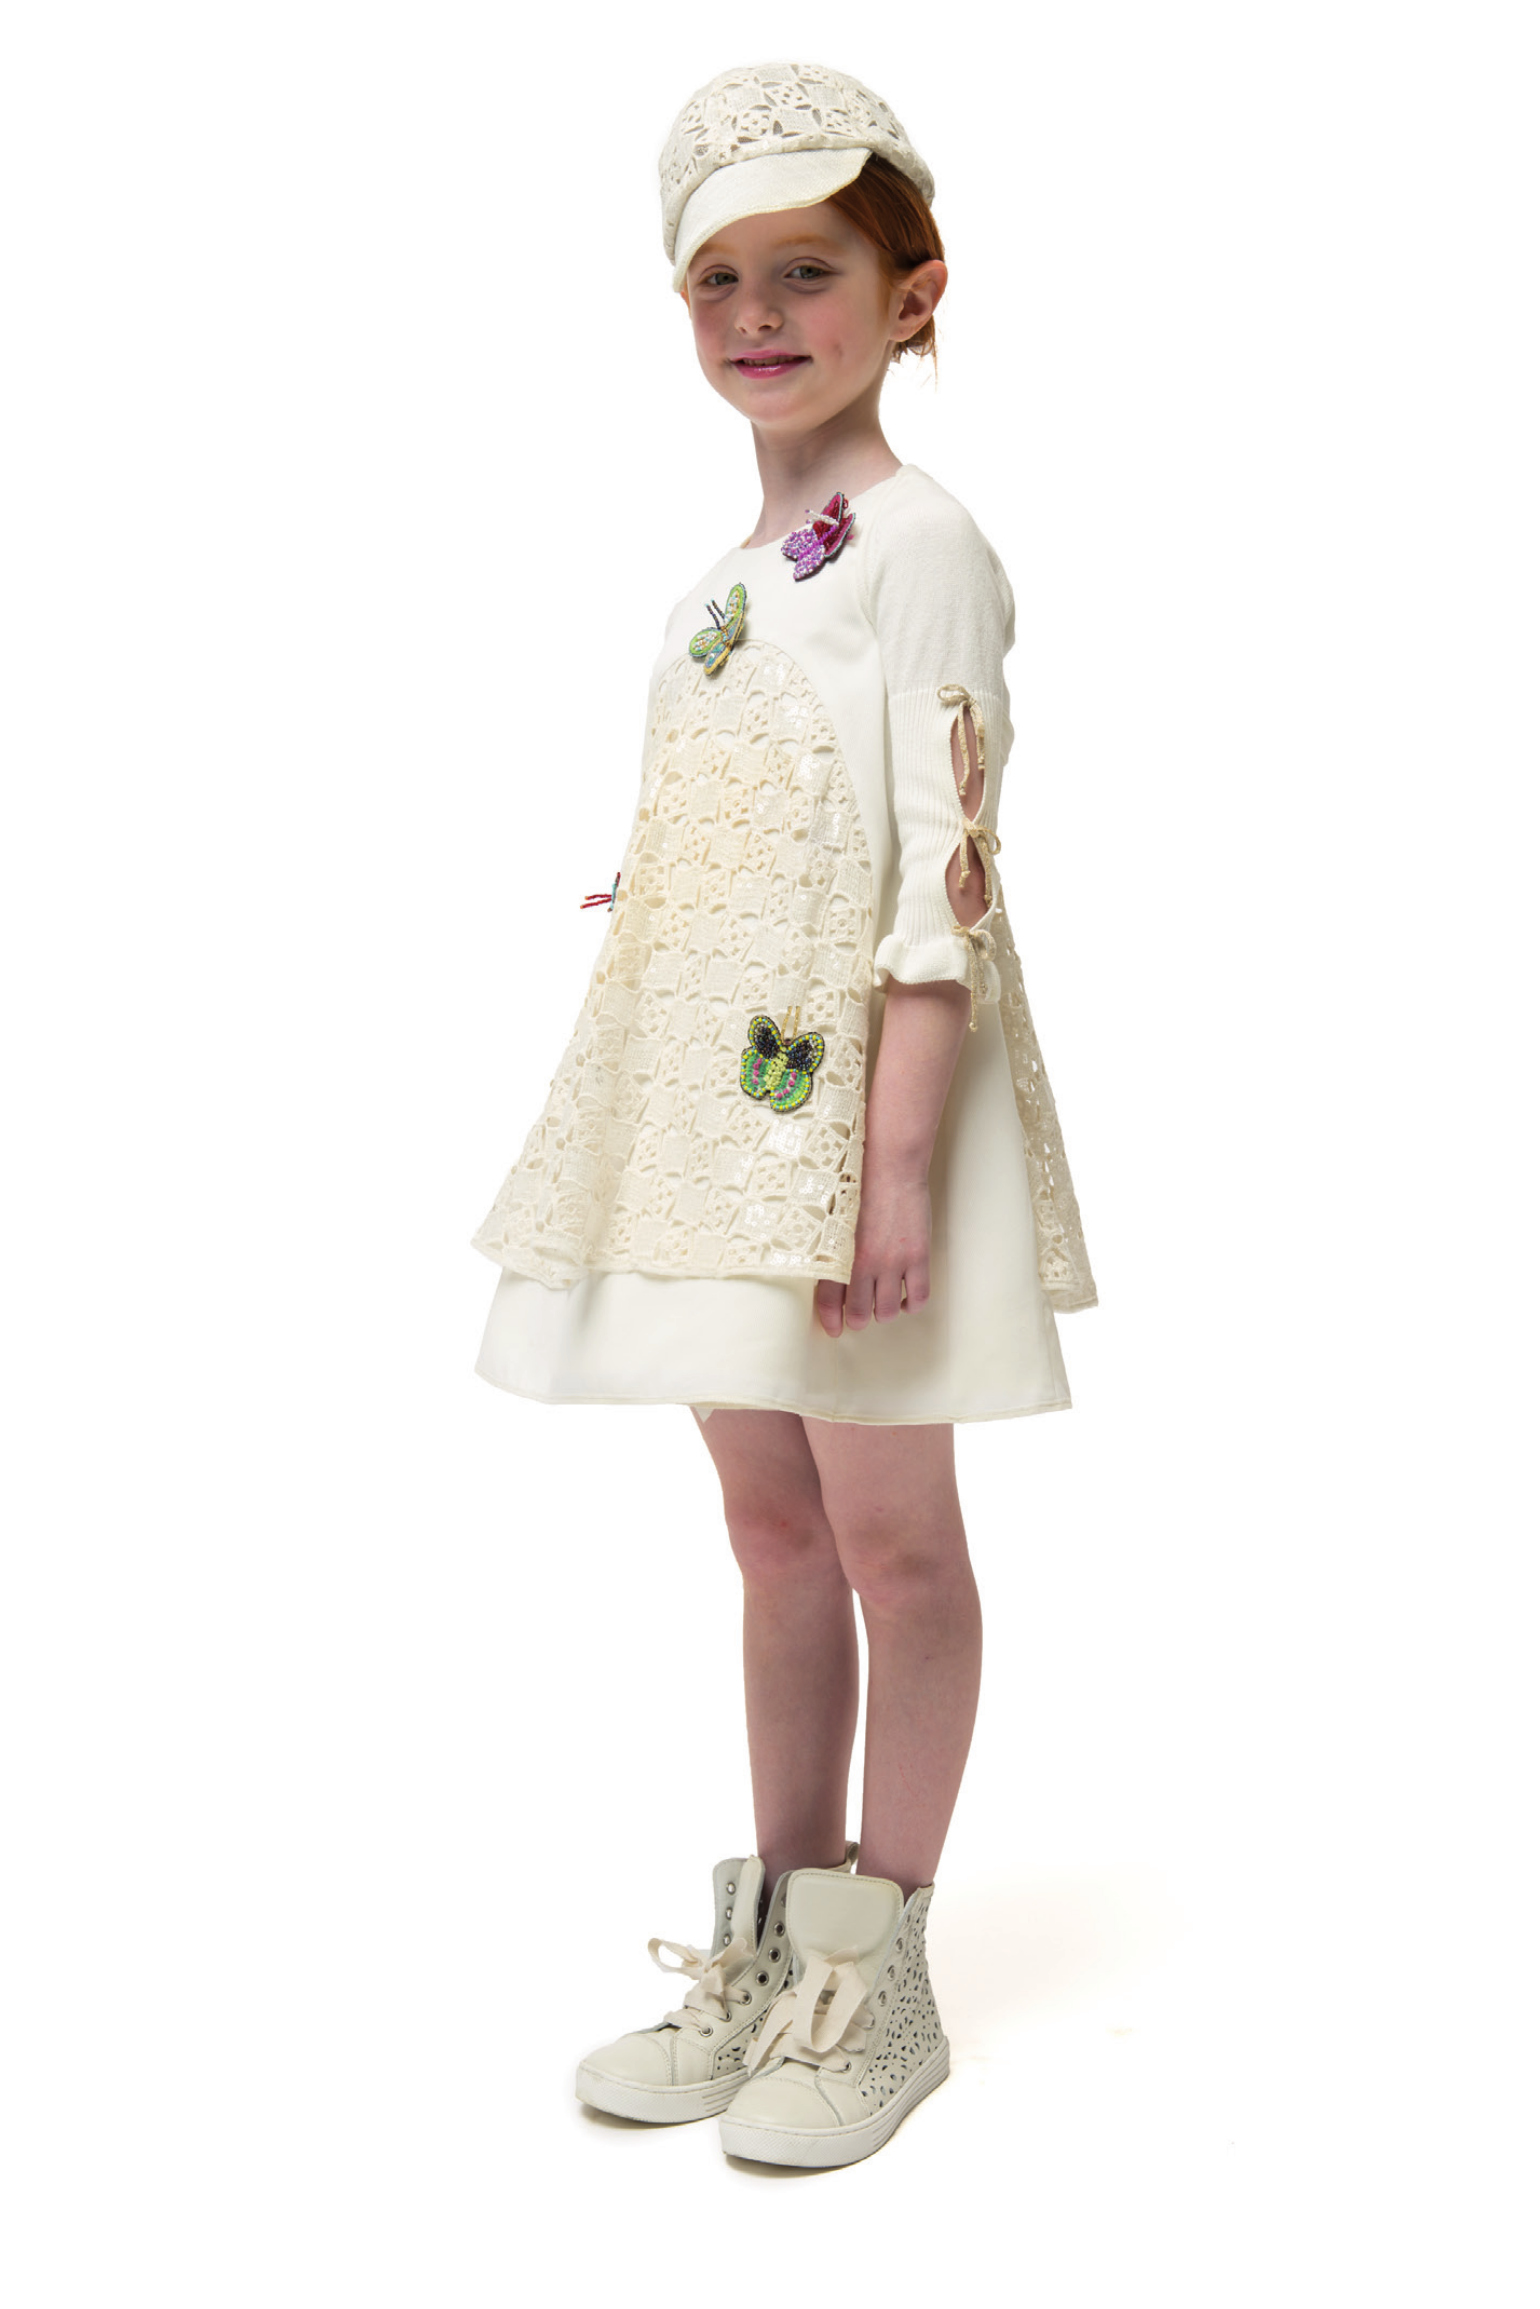 I Pinco Pallino spring 2015, ivory dress with butterflies